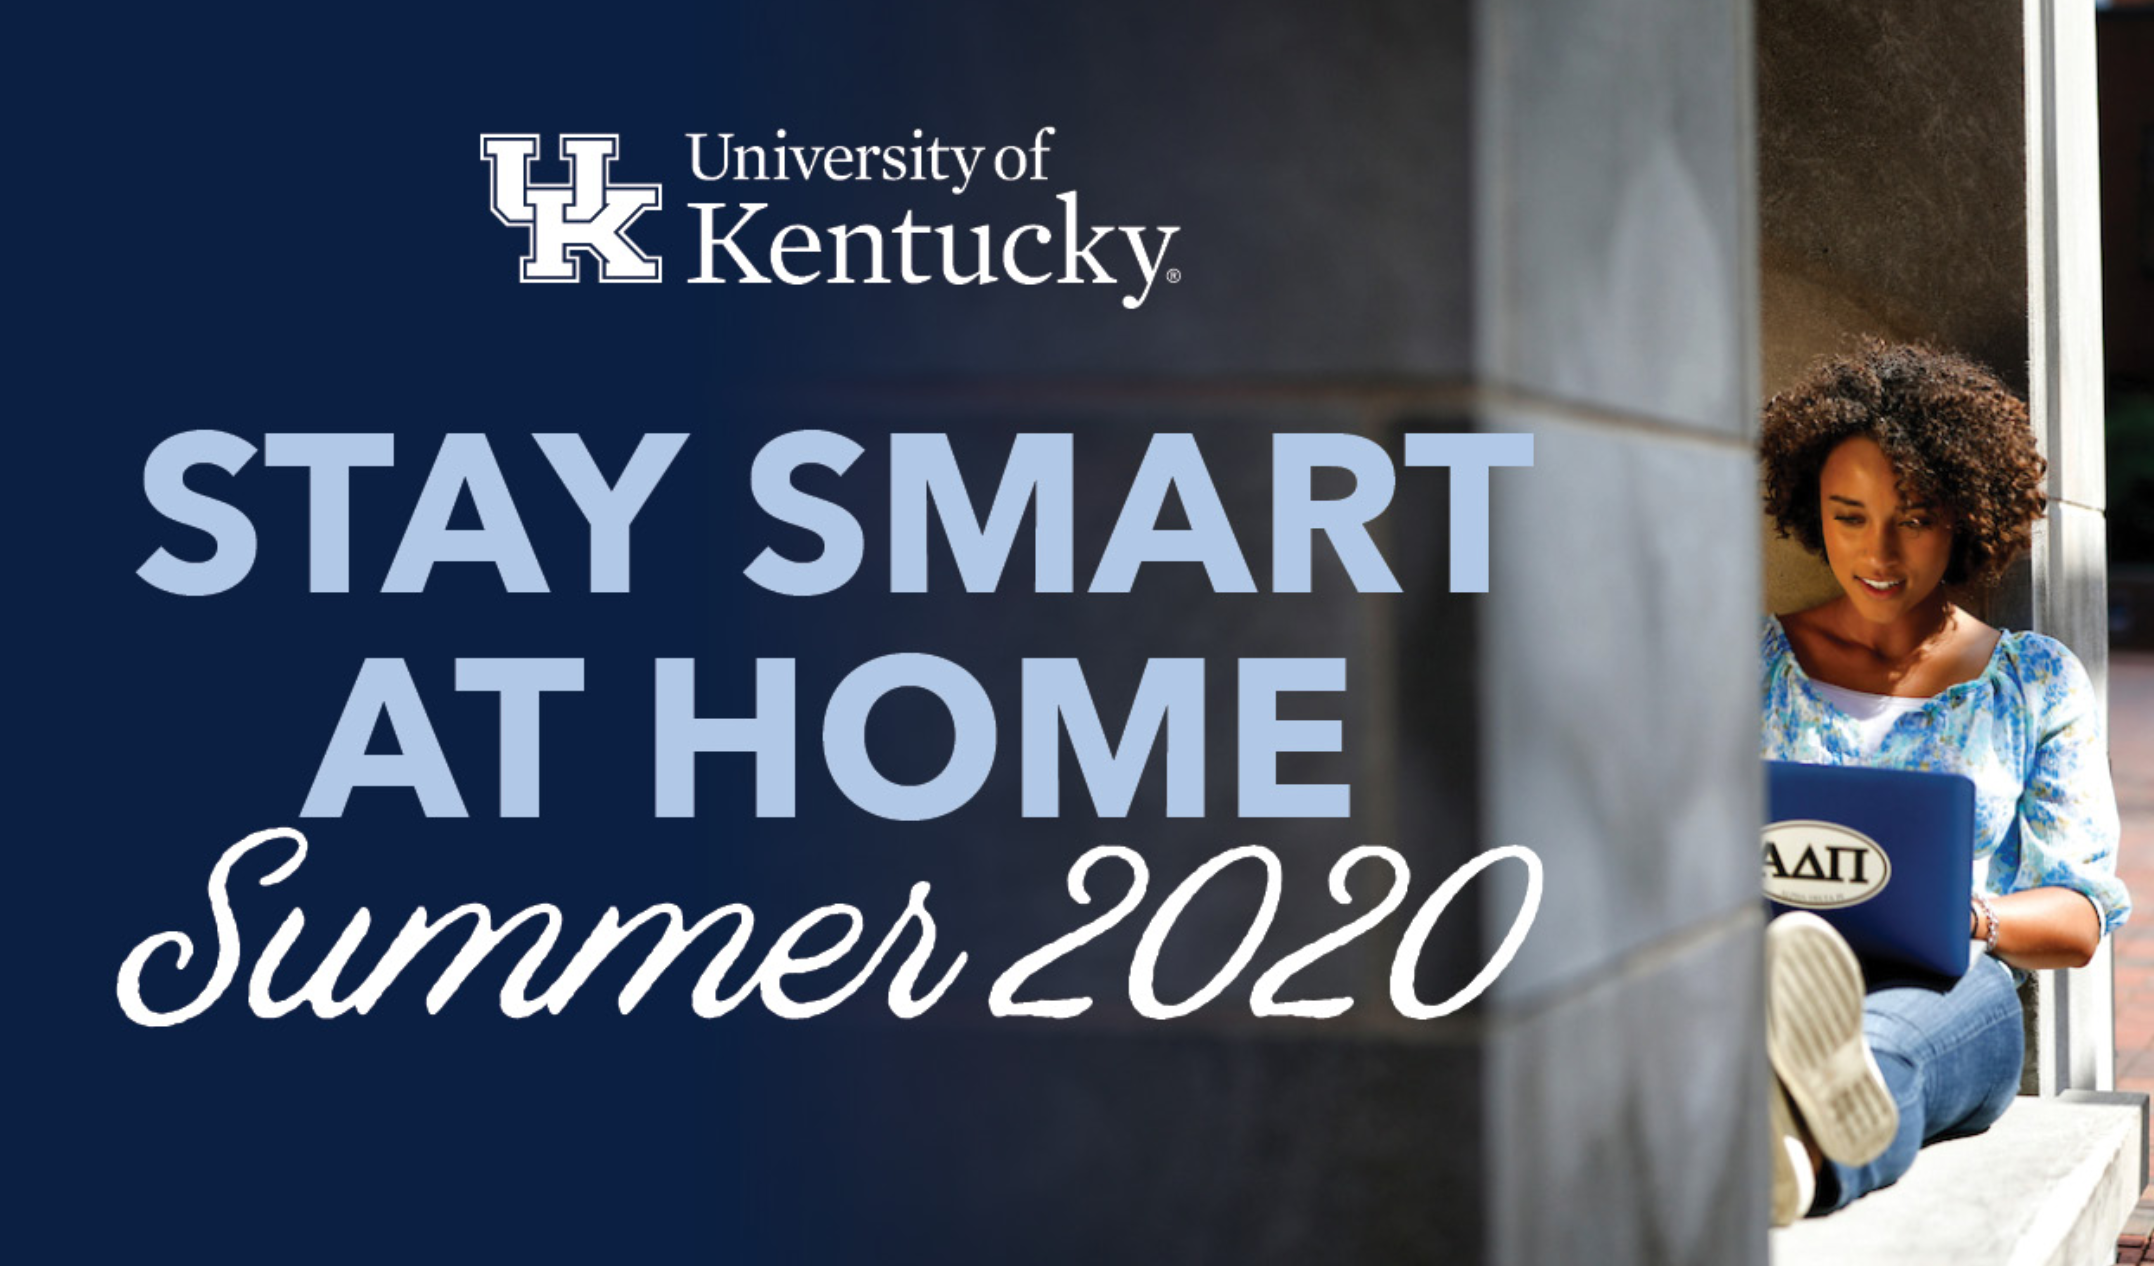 Stay Smart at Home: Summer 2020